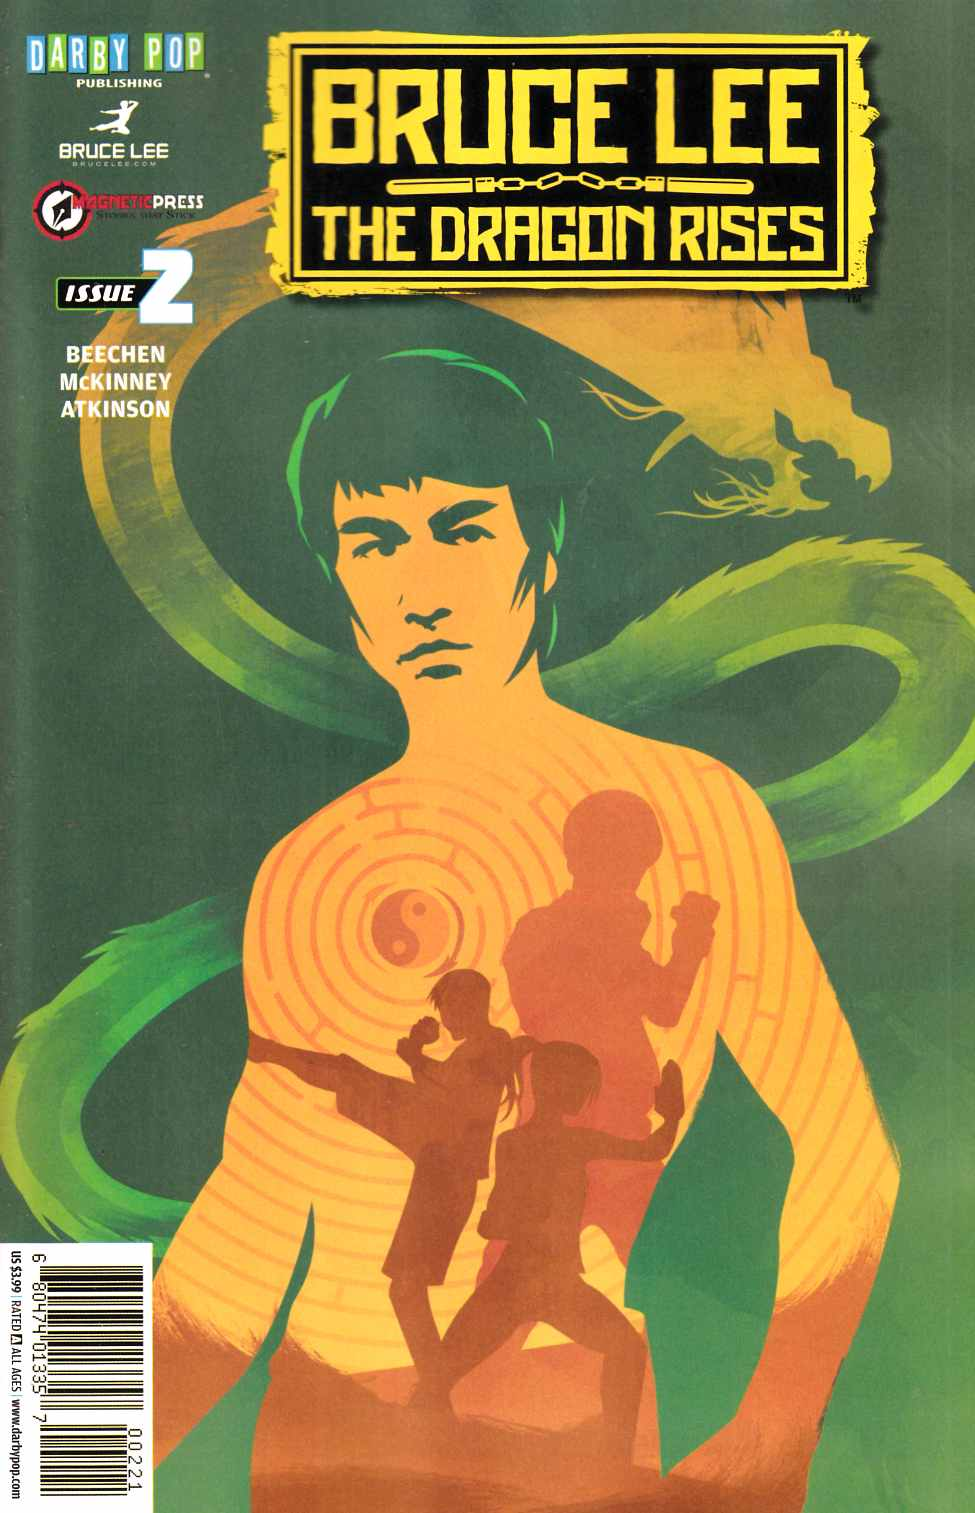 Bruce Lee Dragon Rises #2 Cover B [Darby Pop Comic]